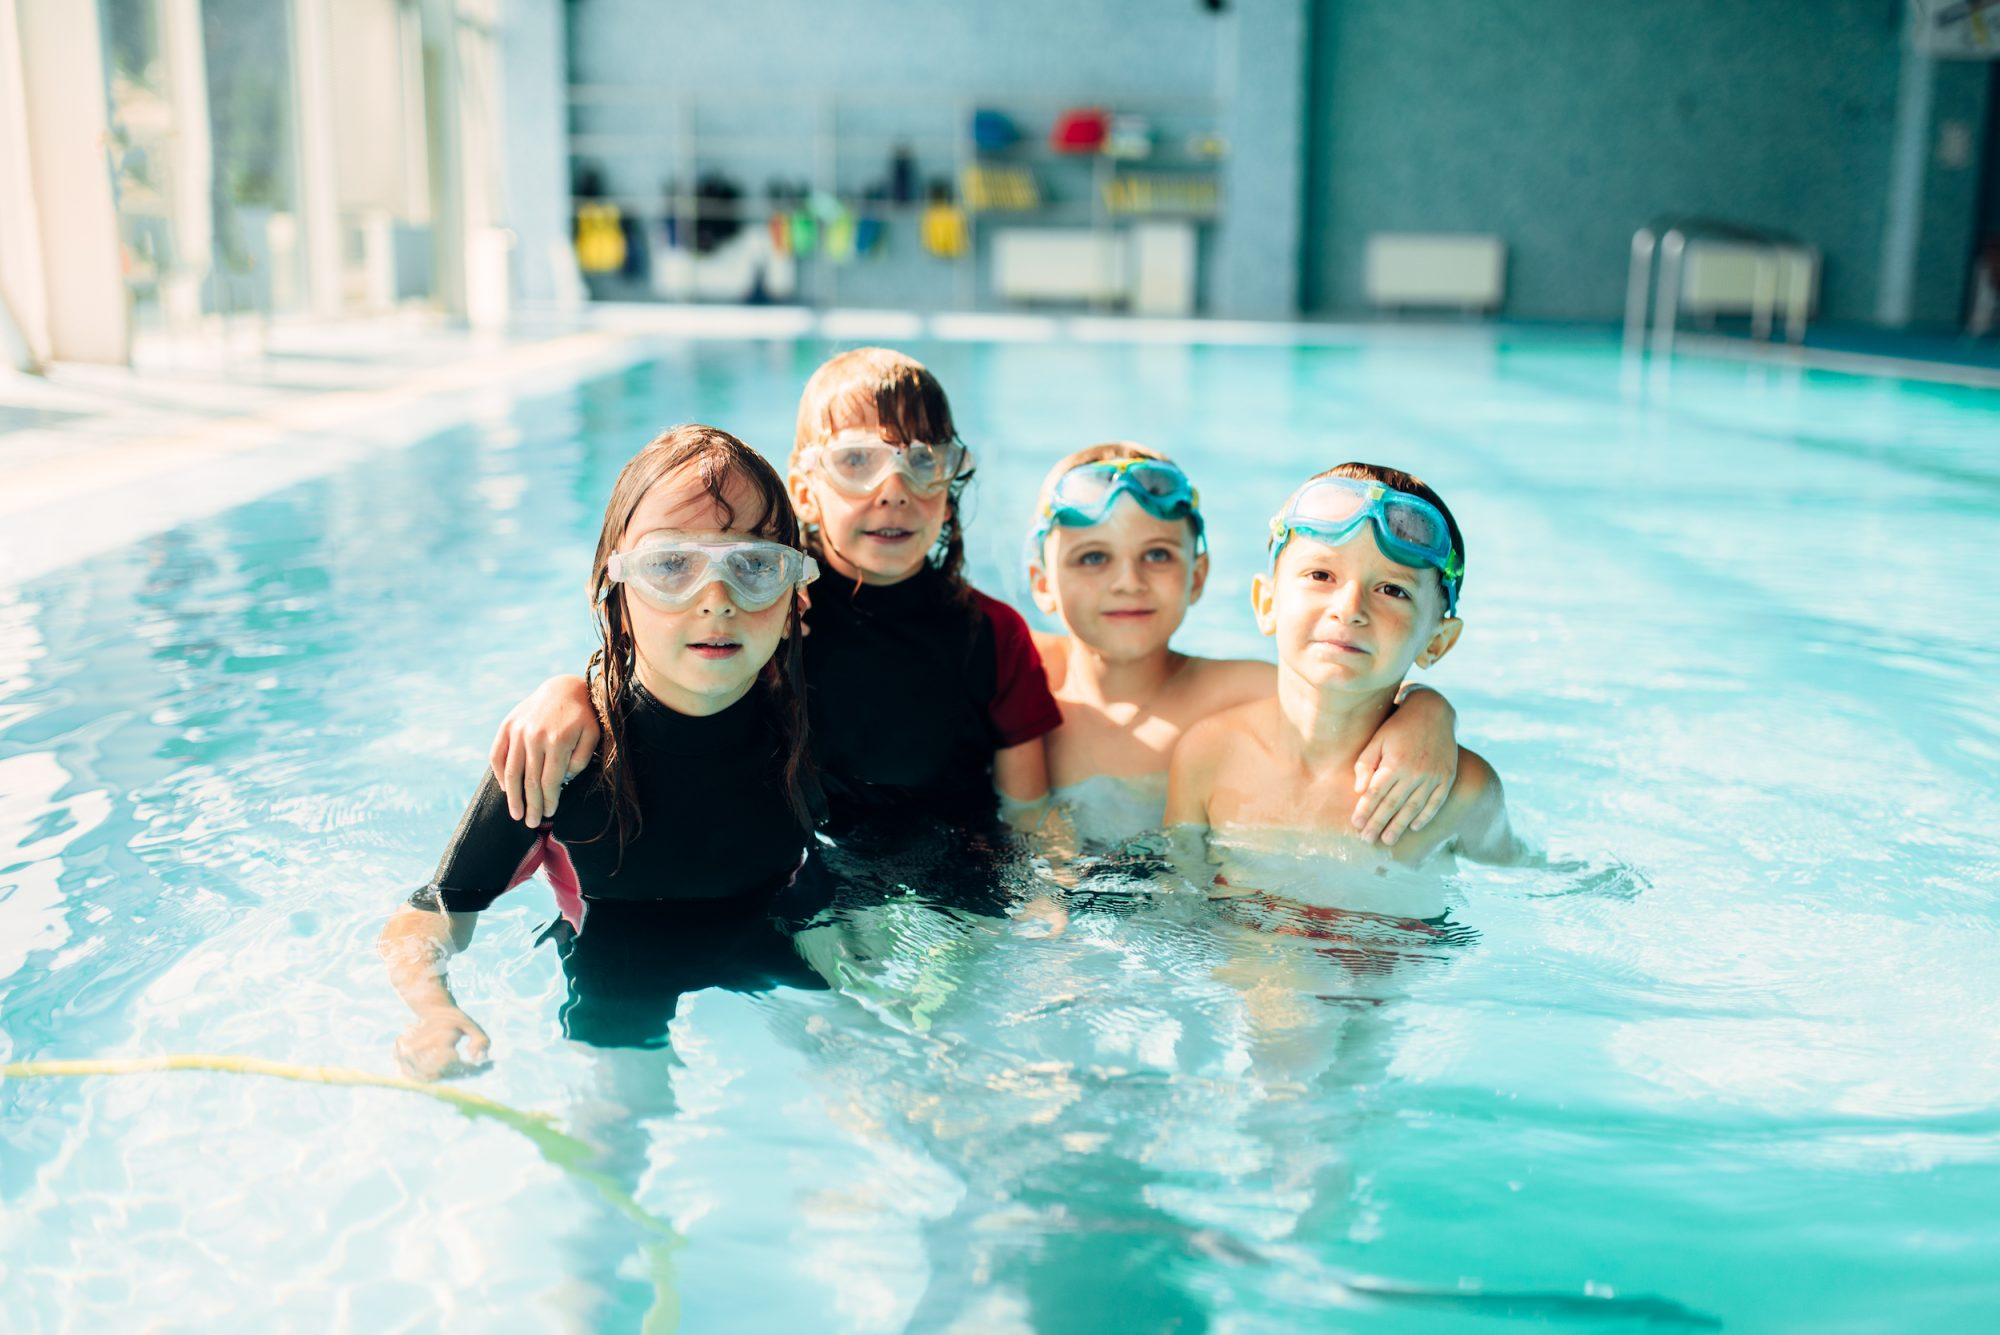 Neglect behind cases of children drowning in swimming pools